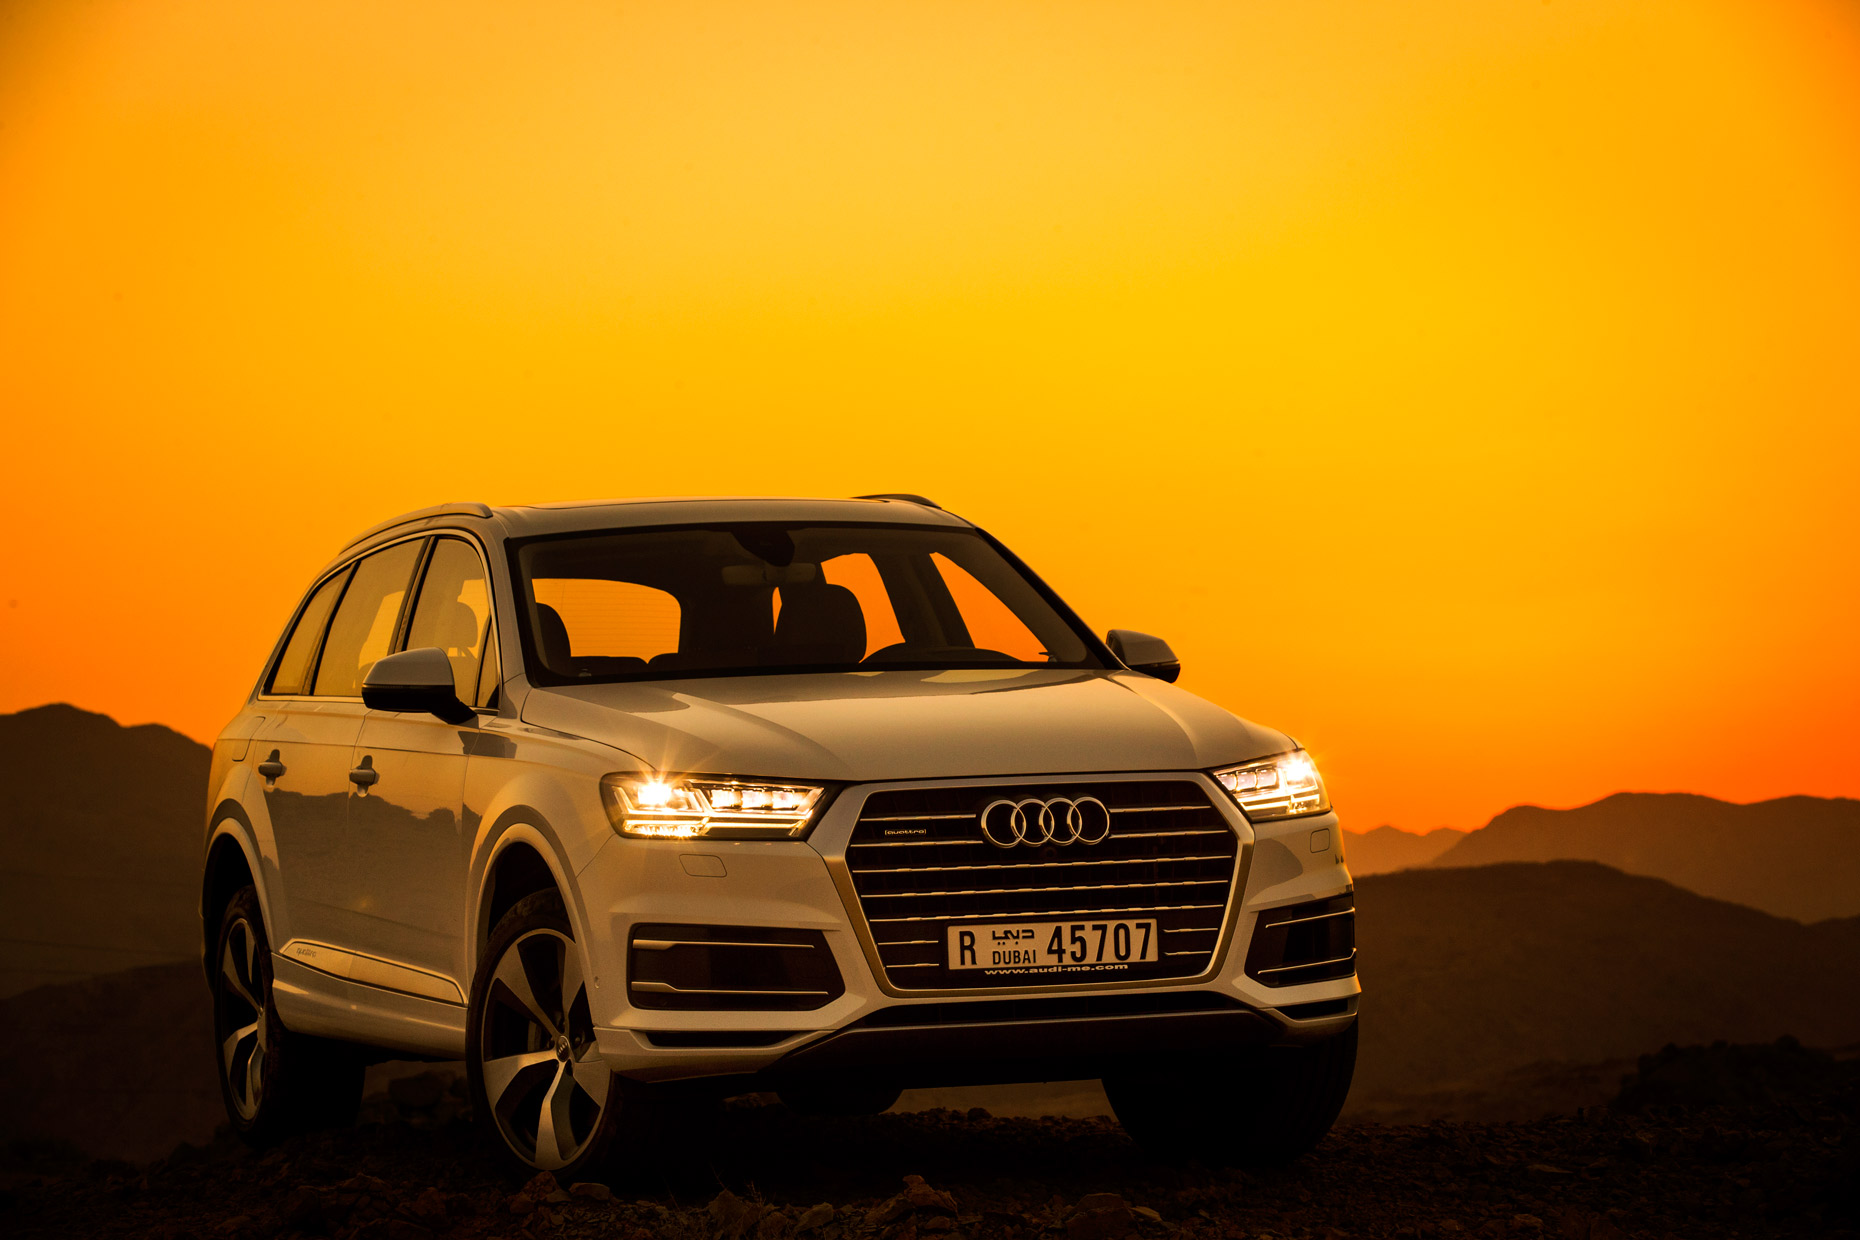 Wouter-Kingma-for-Audi-Q7